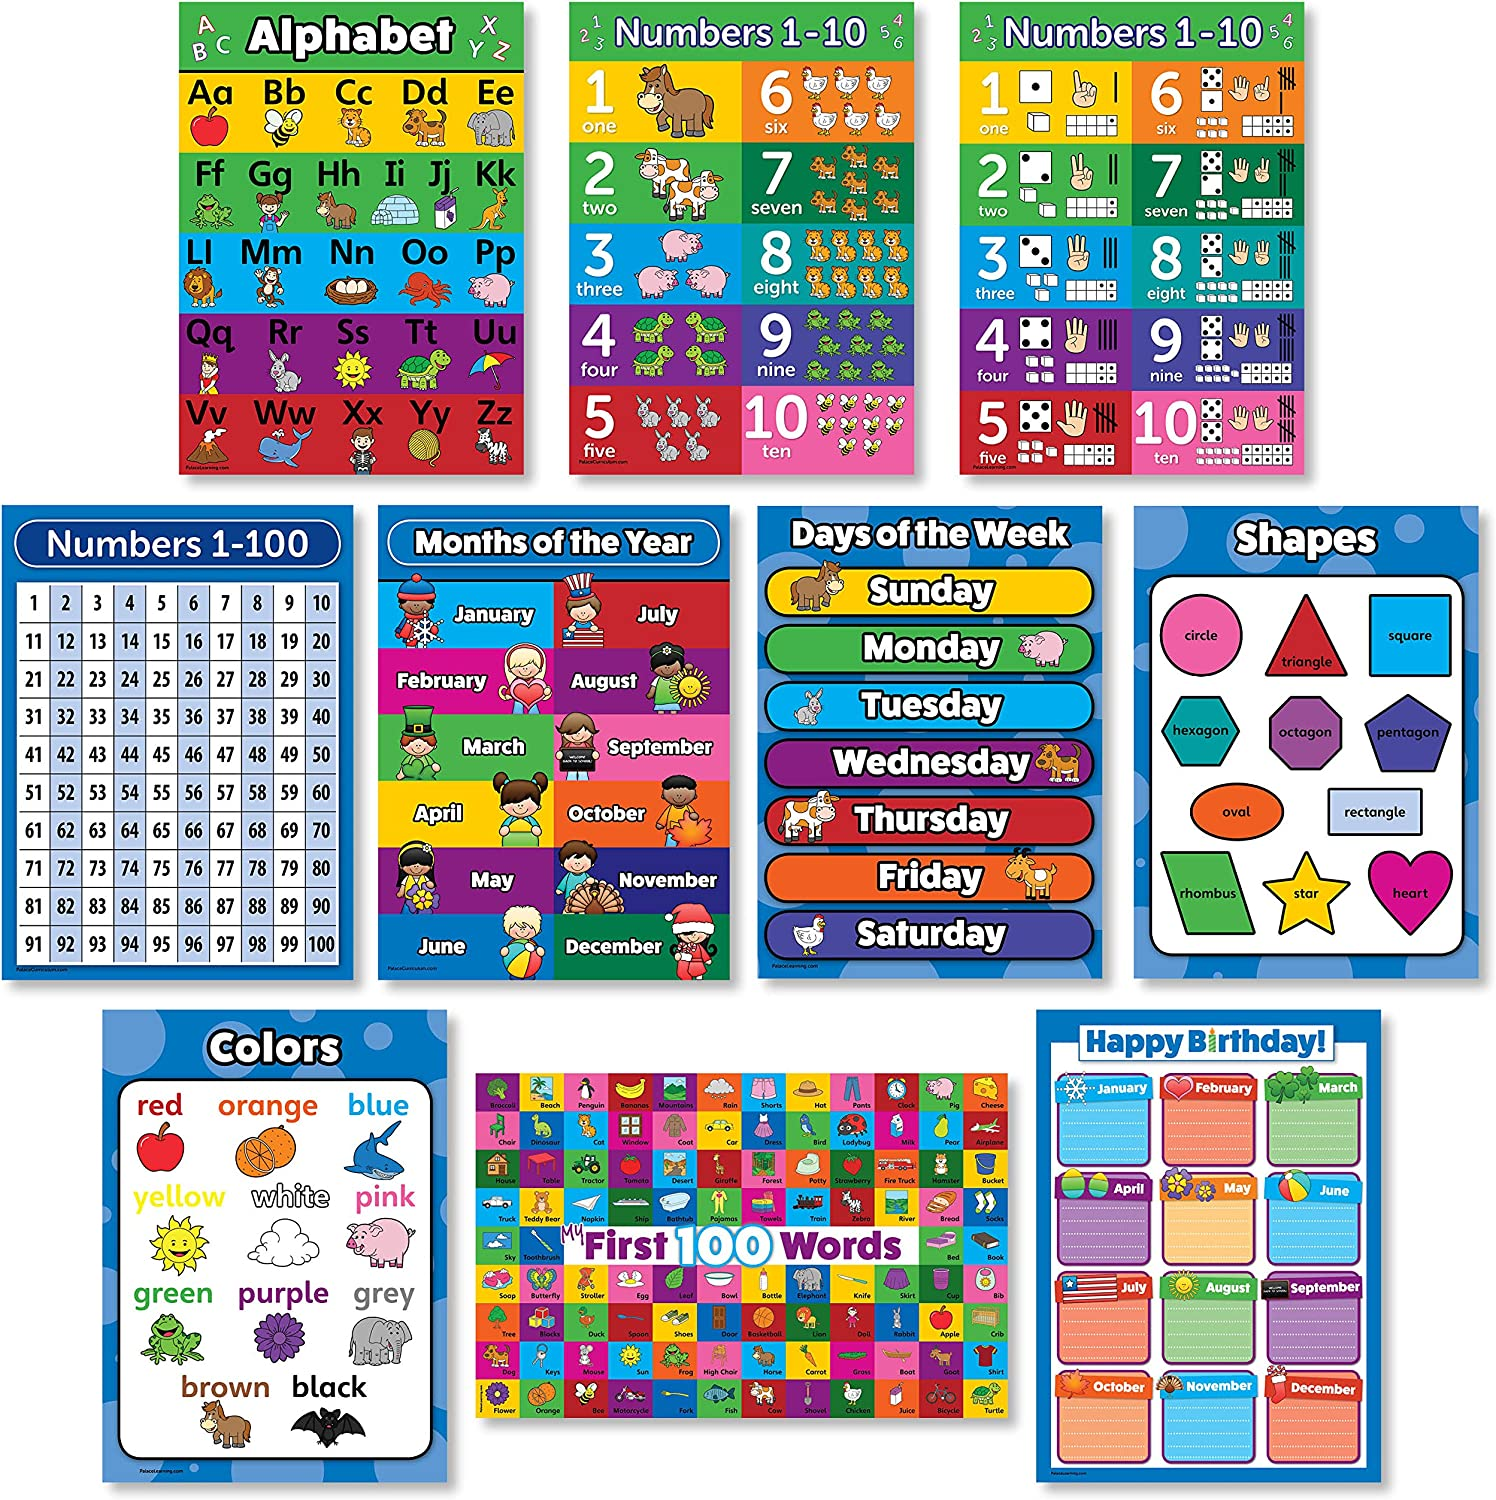 Pre-School Early Learning Homeschooling Kids ABC Alphabet Educational Poster